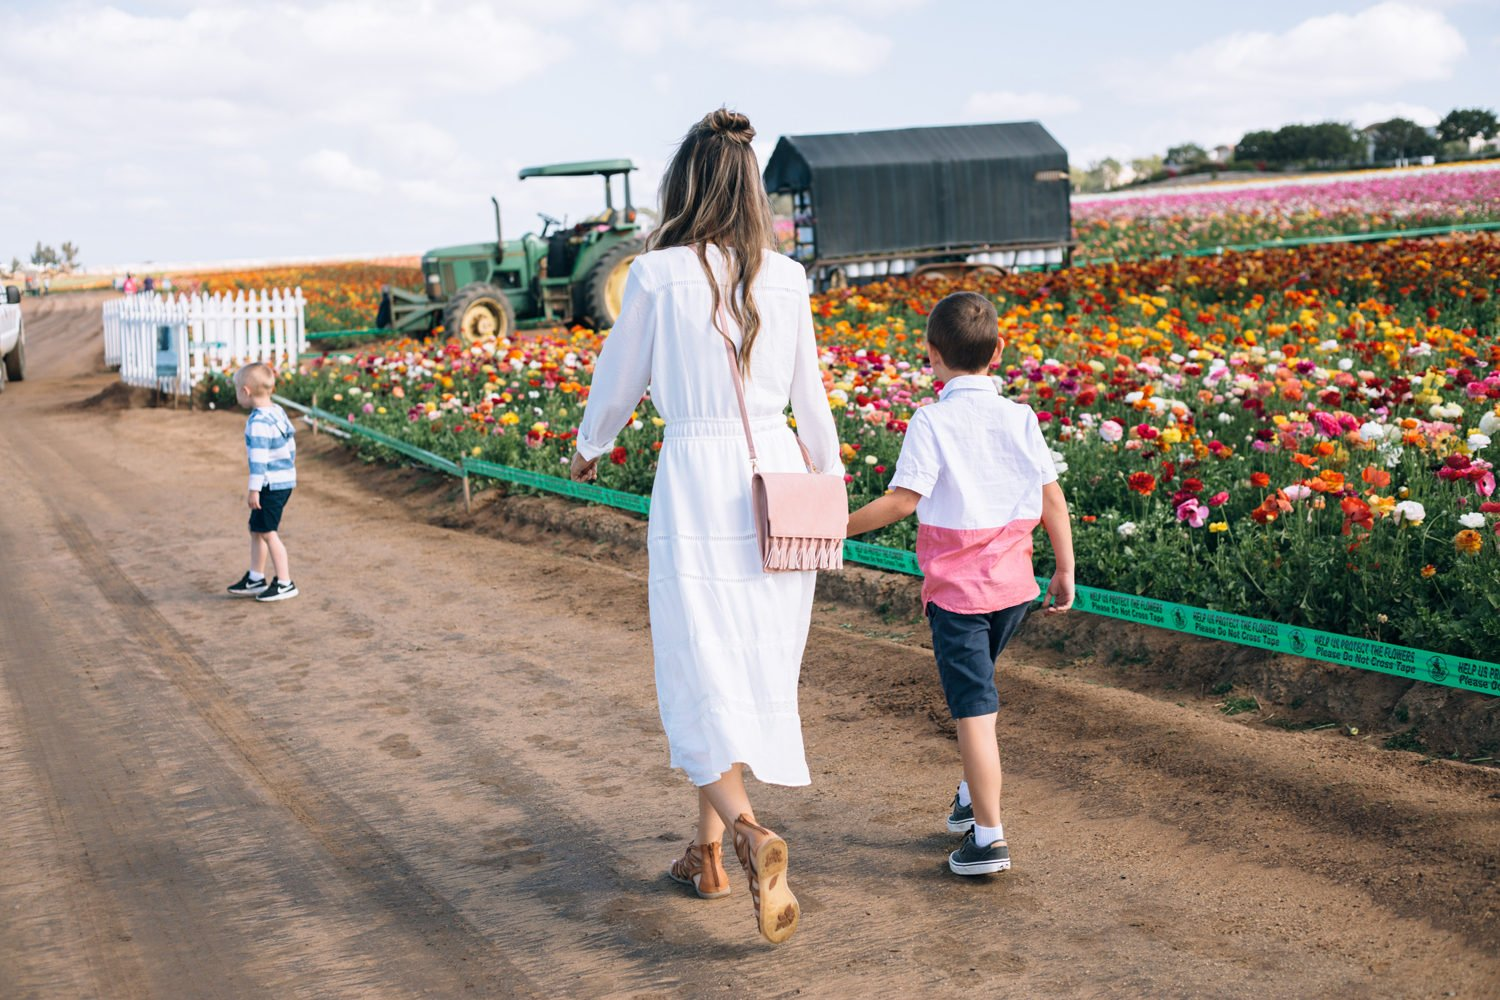 Merrick's Art | Carlsbad Flower Fields with Born